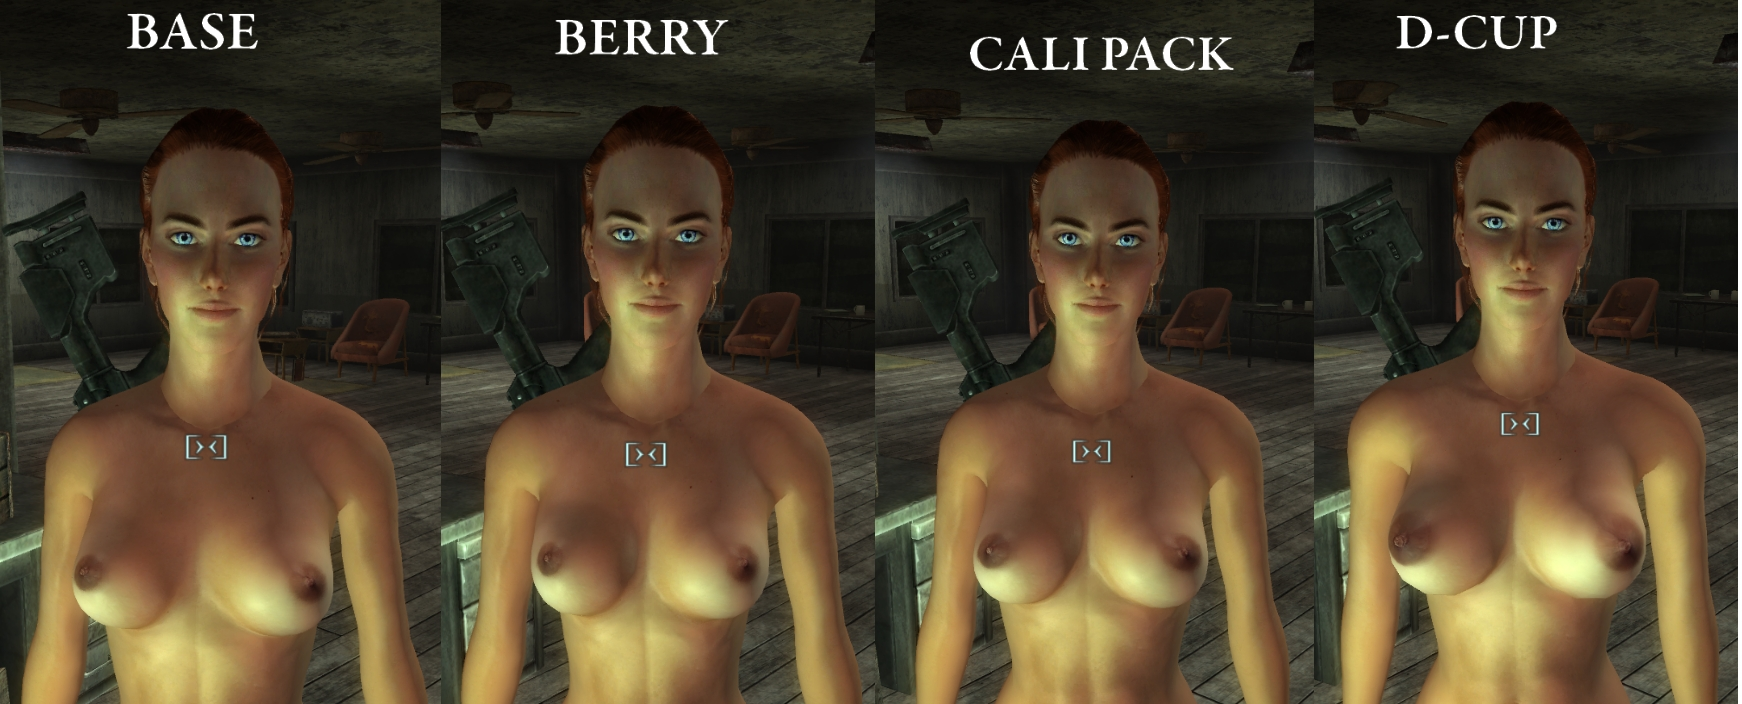 Fallout new vegas nude patch hentia gallery